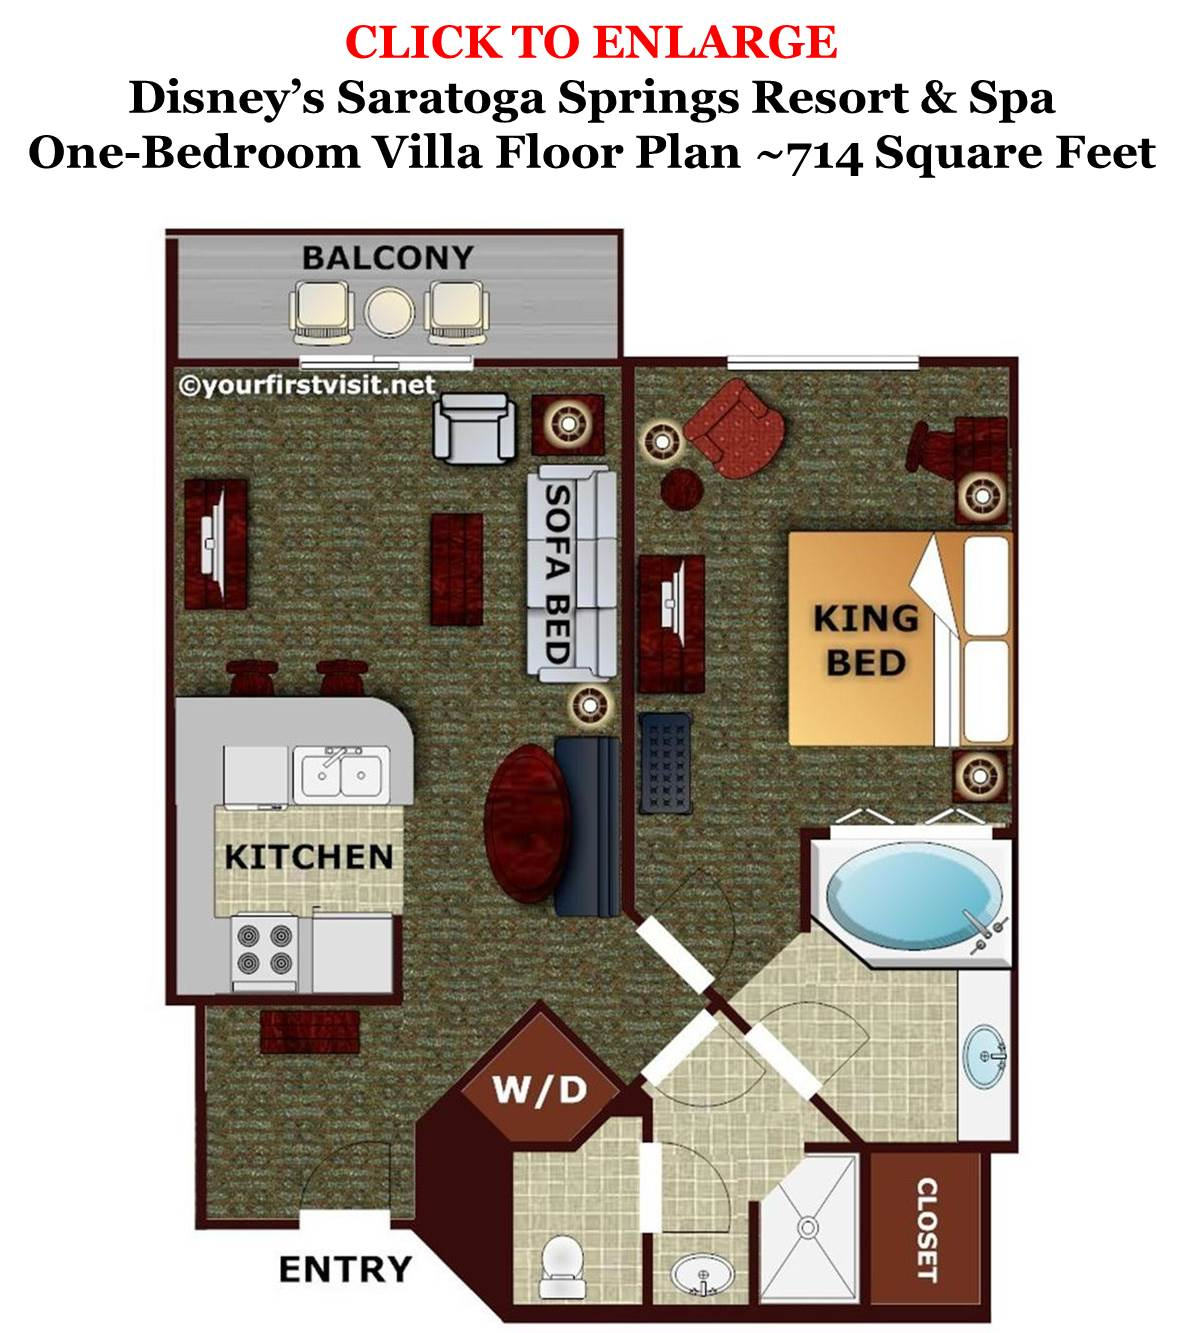 One Bedroom Villa Floor Plan Disneys Saratoga Springs